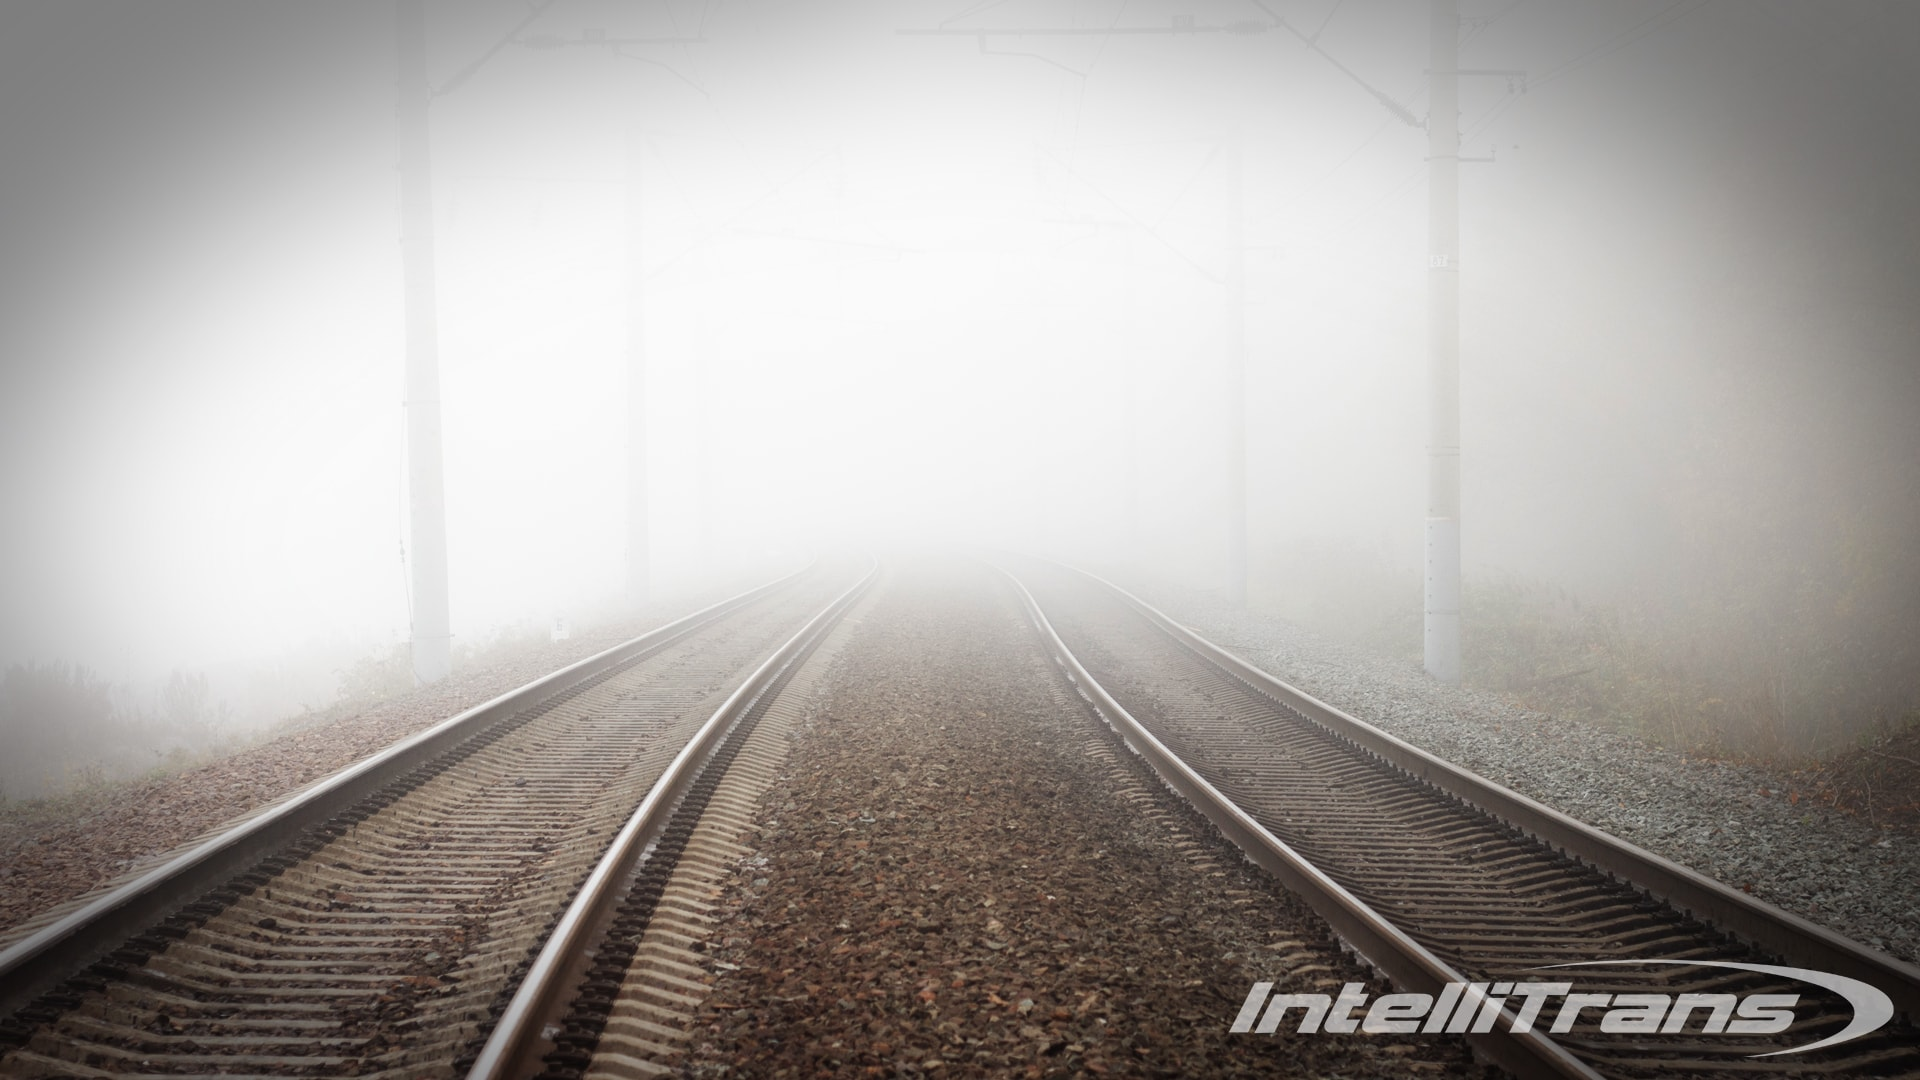 Thoughts on Visibility in the Supply Chain